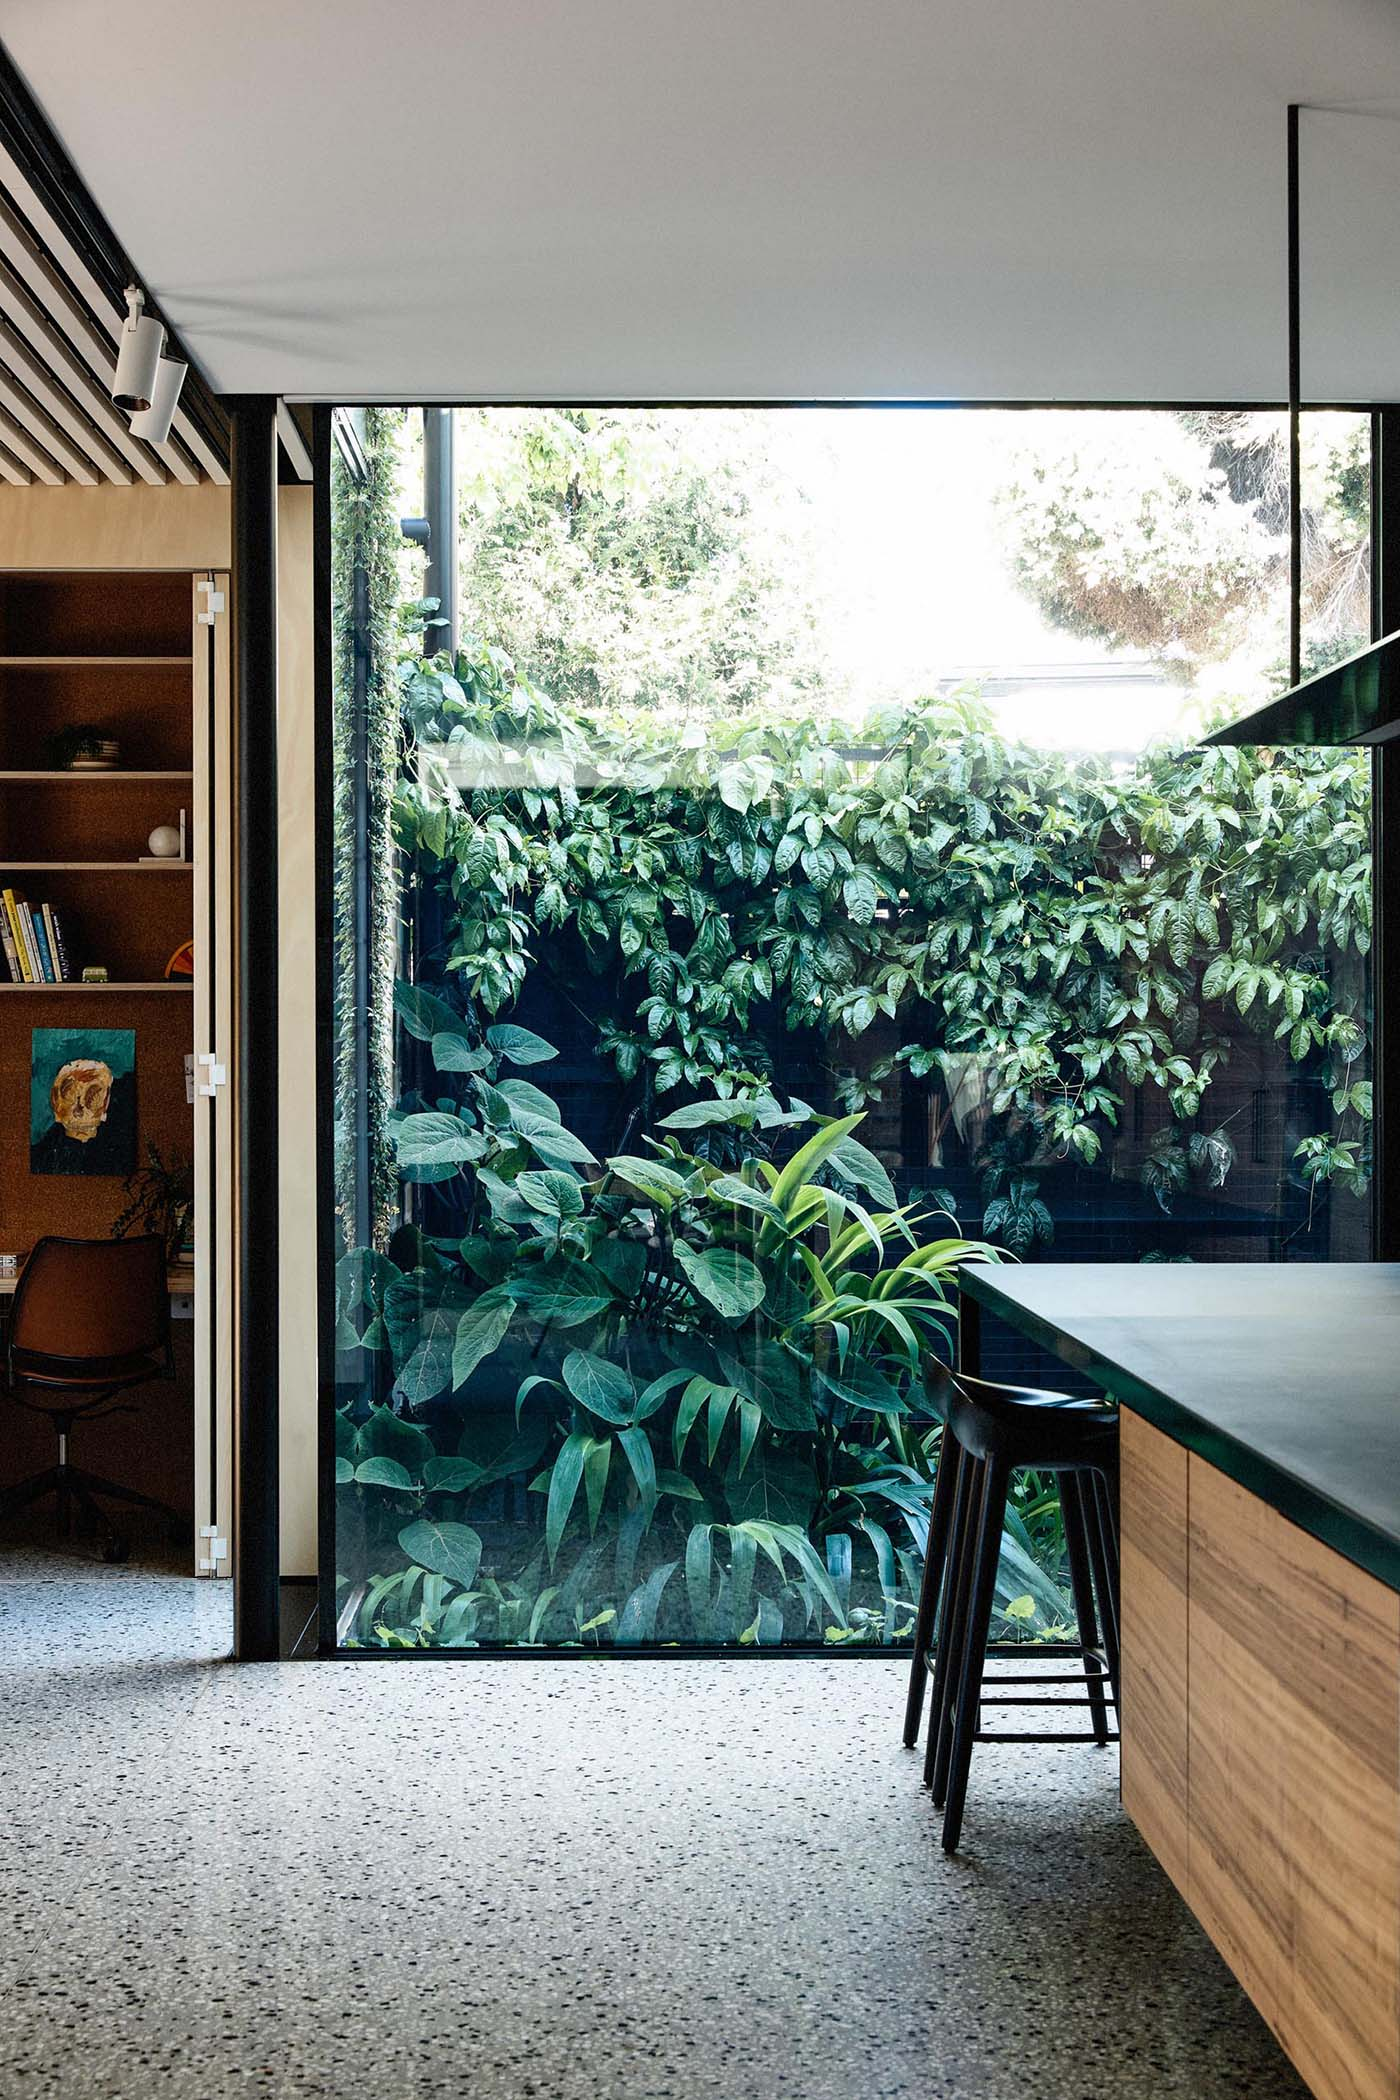 A home office tucked into a closet is adjacent to a large window that provides an unobstructed view of the garden outside.